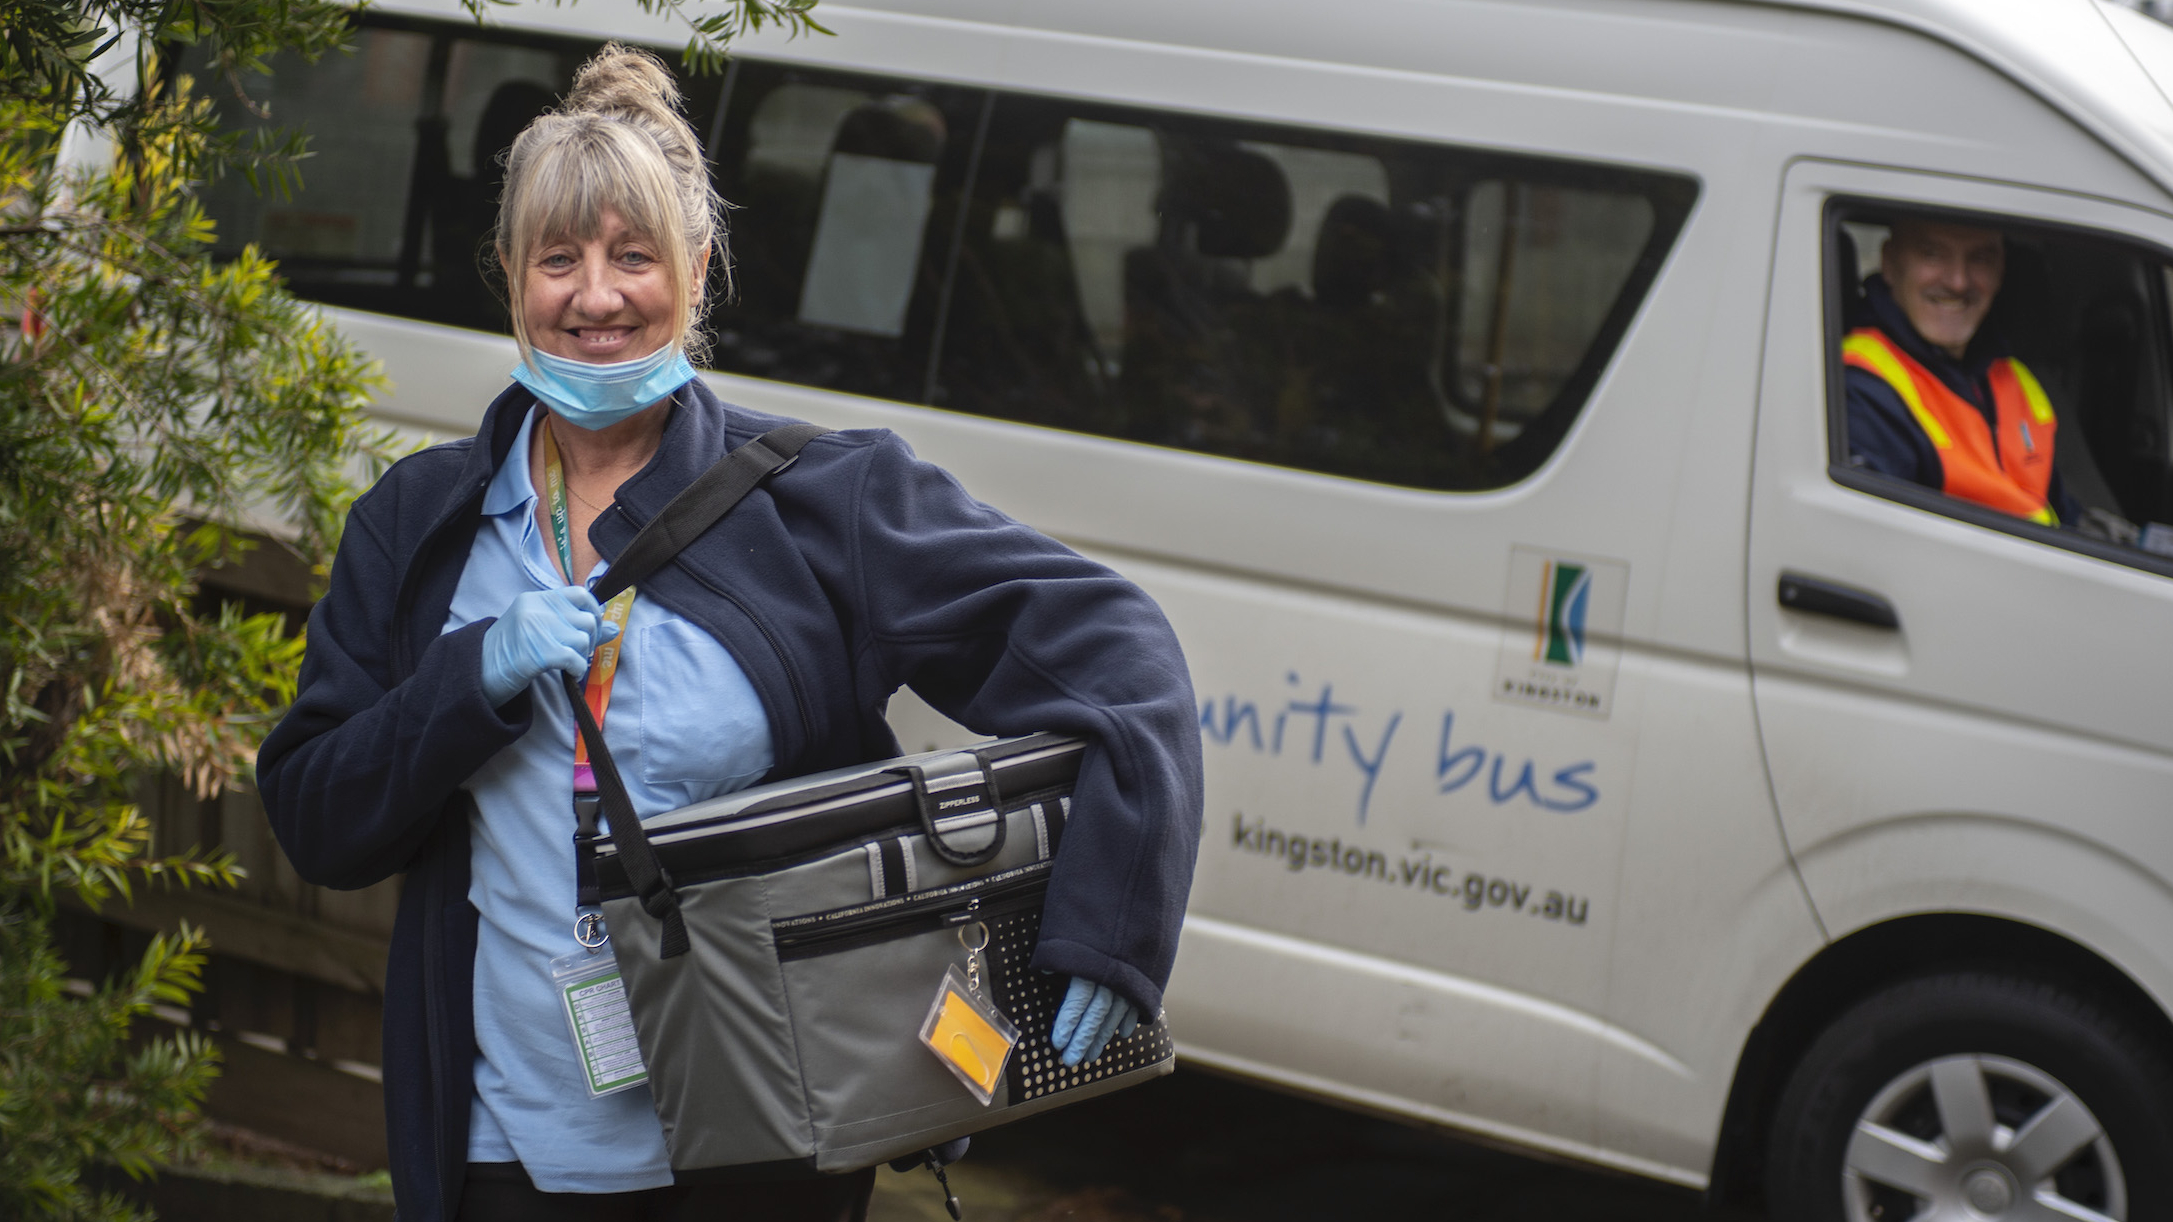 City of Kingston AccessCare team delivers means using the community bus